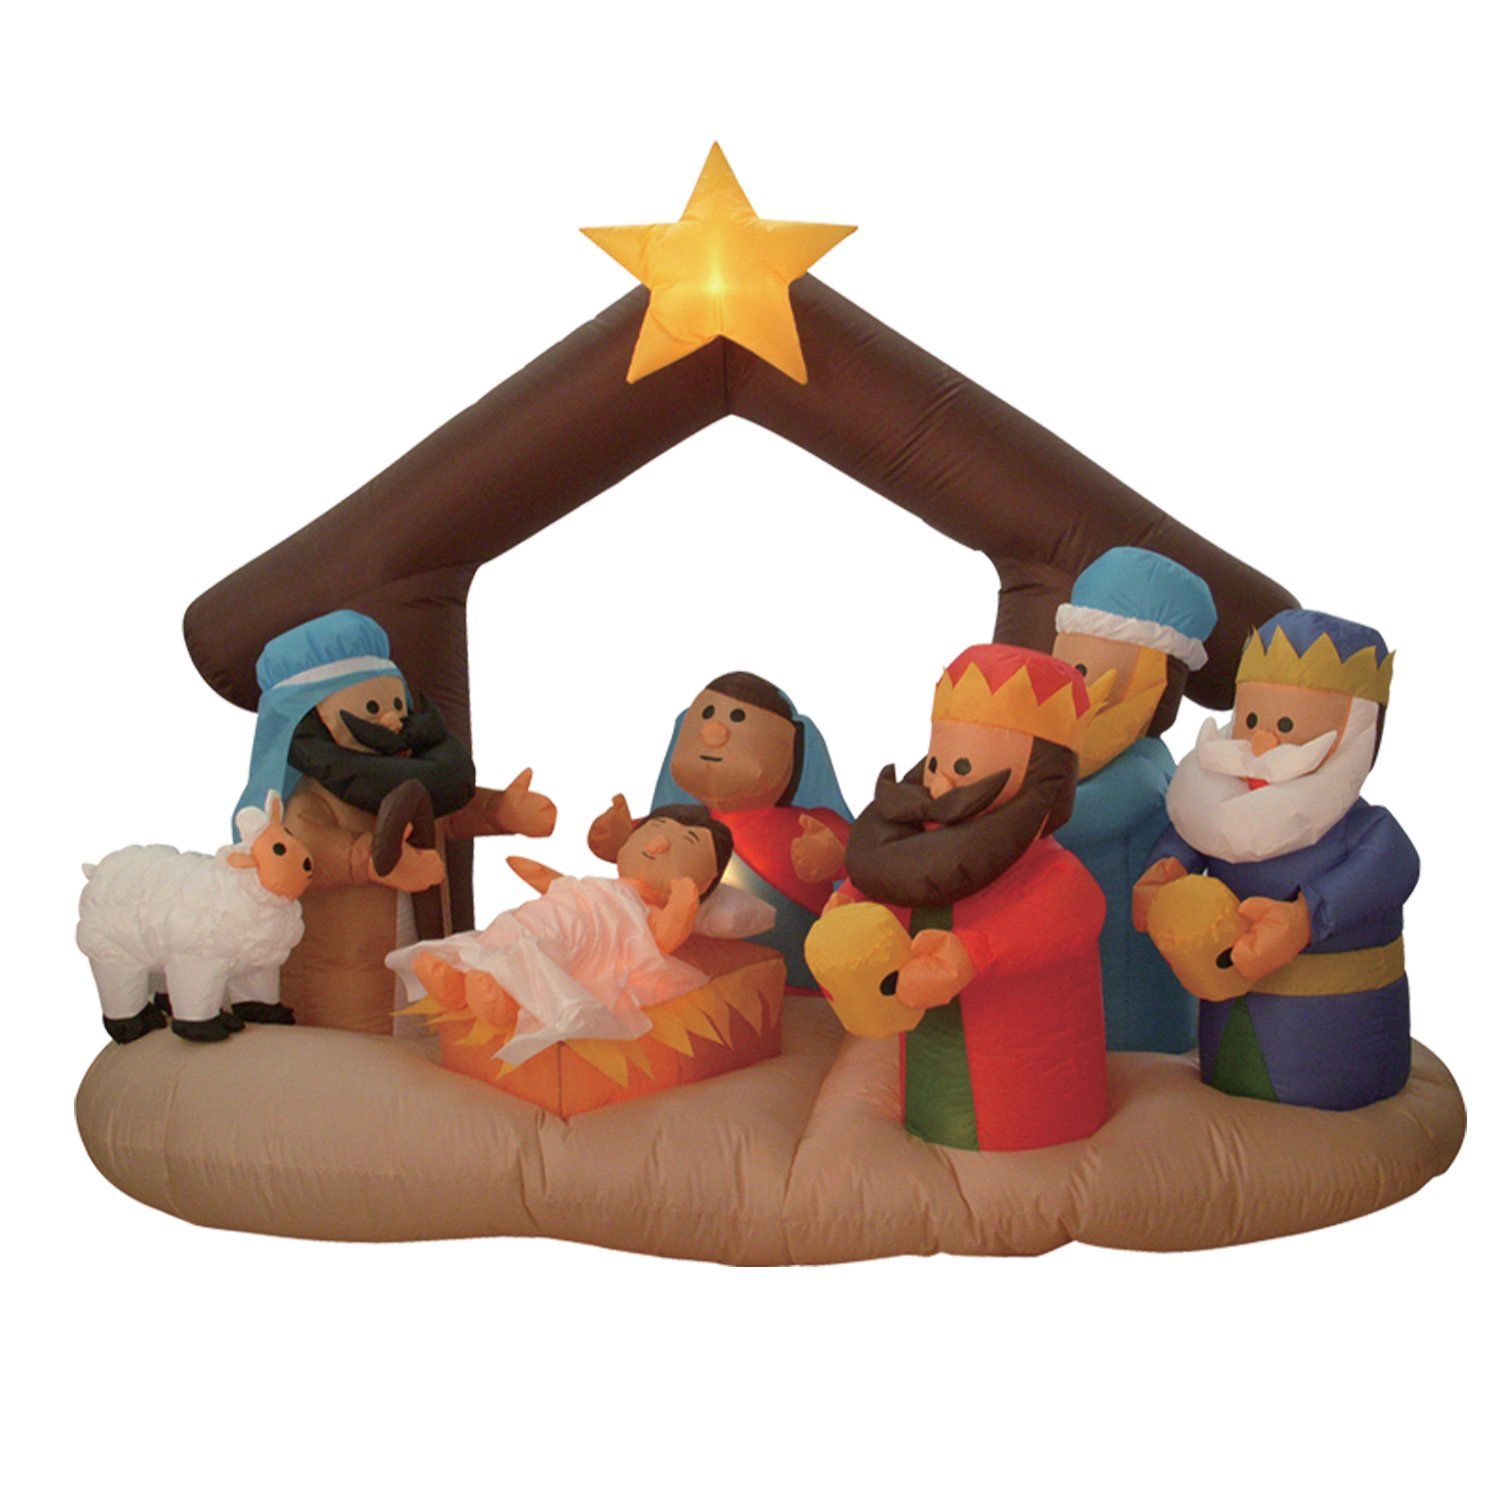 amazoncom 6 foot christmas inflatable nativity scene with three kings party decoration home kitchen - Outdoor Christmas Inflatables